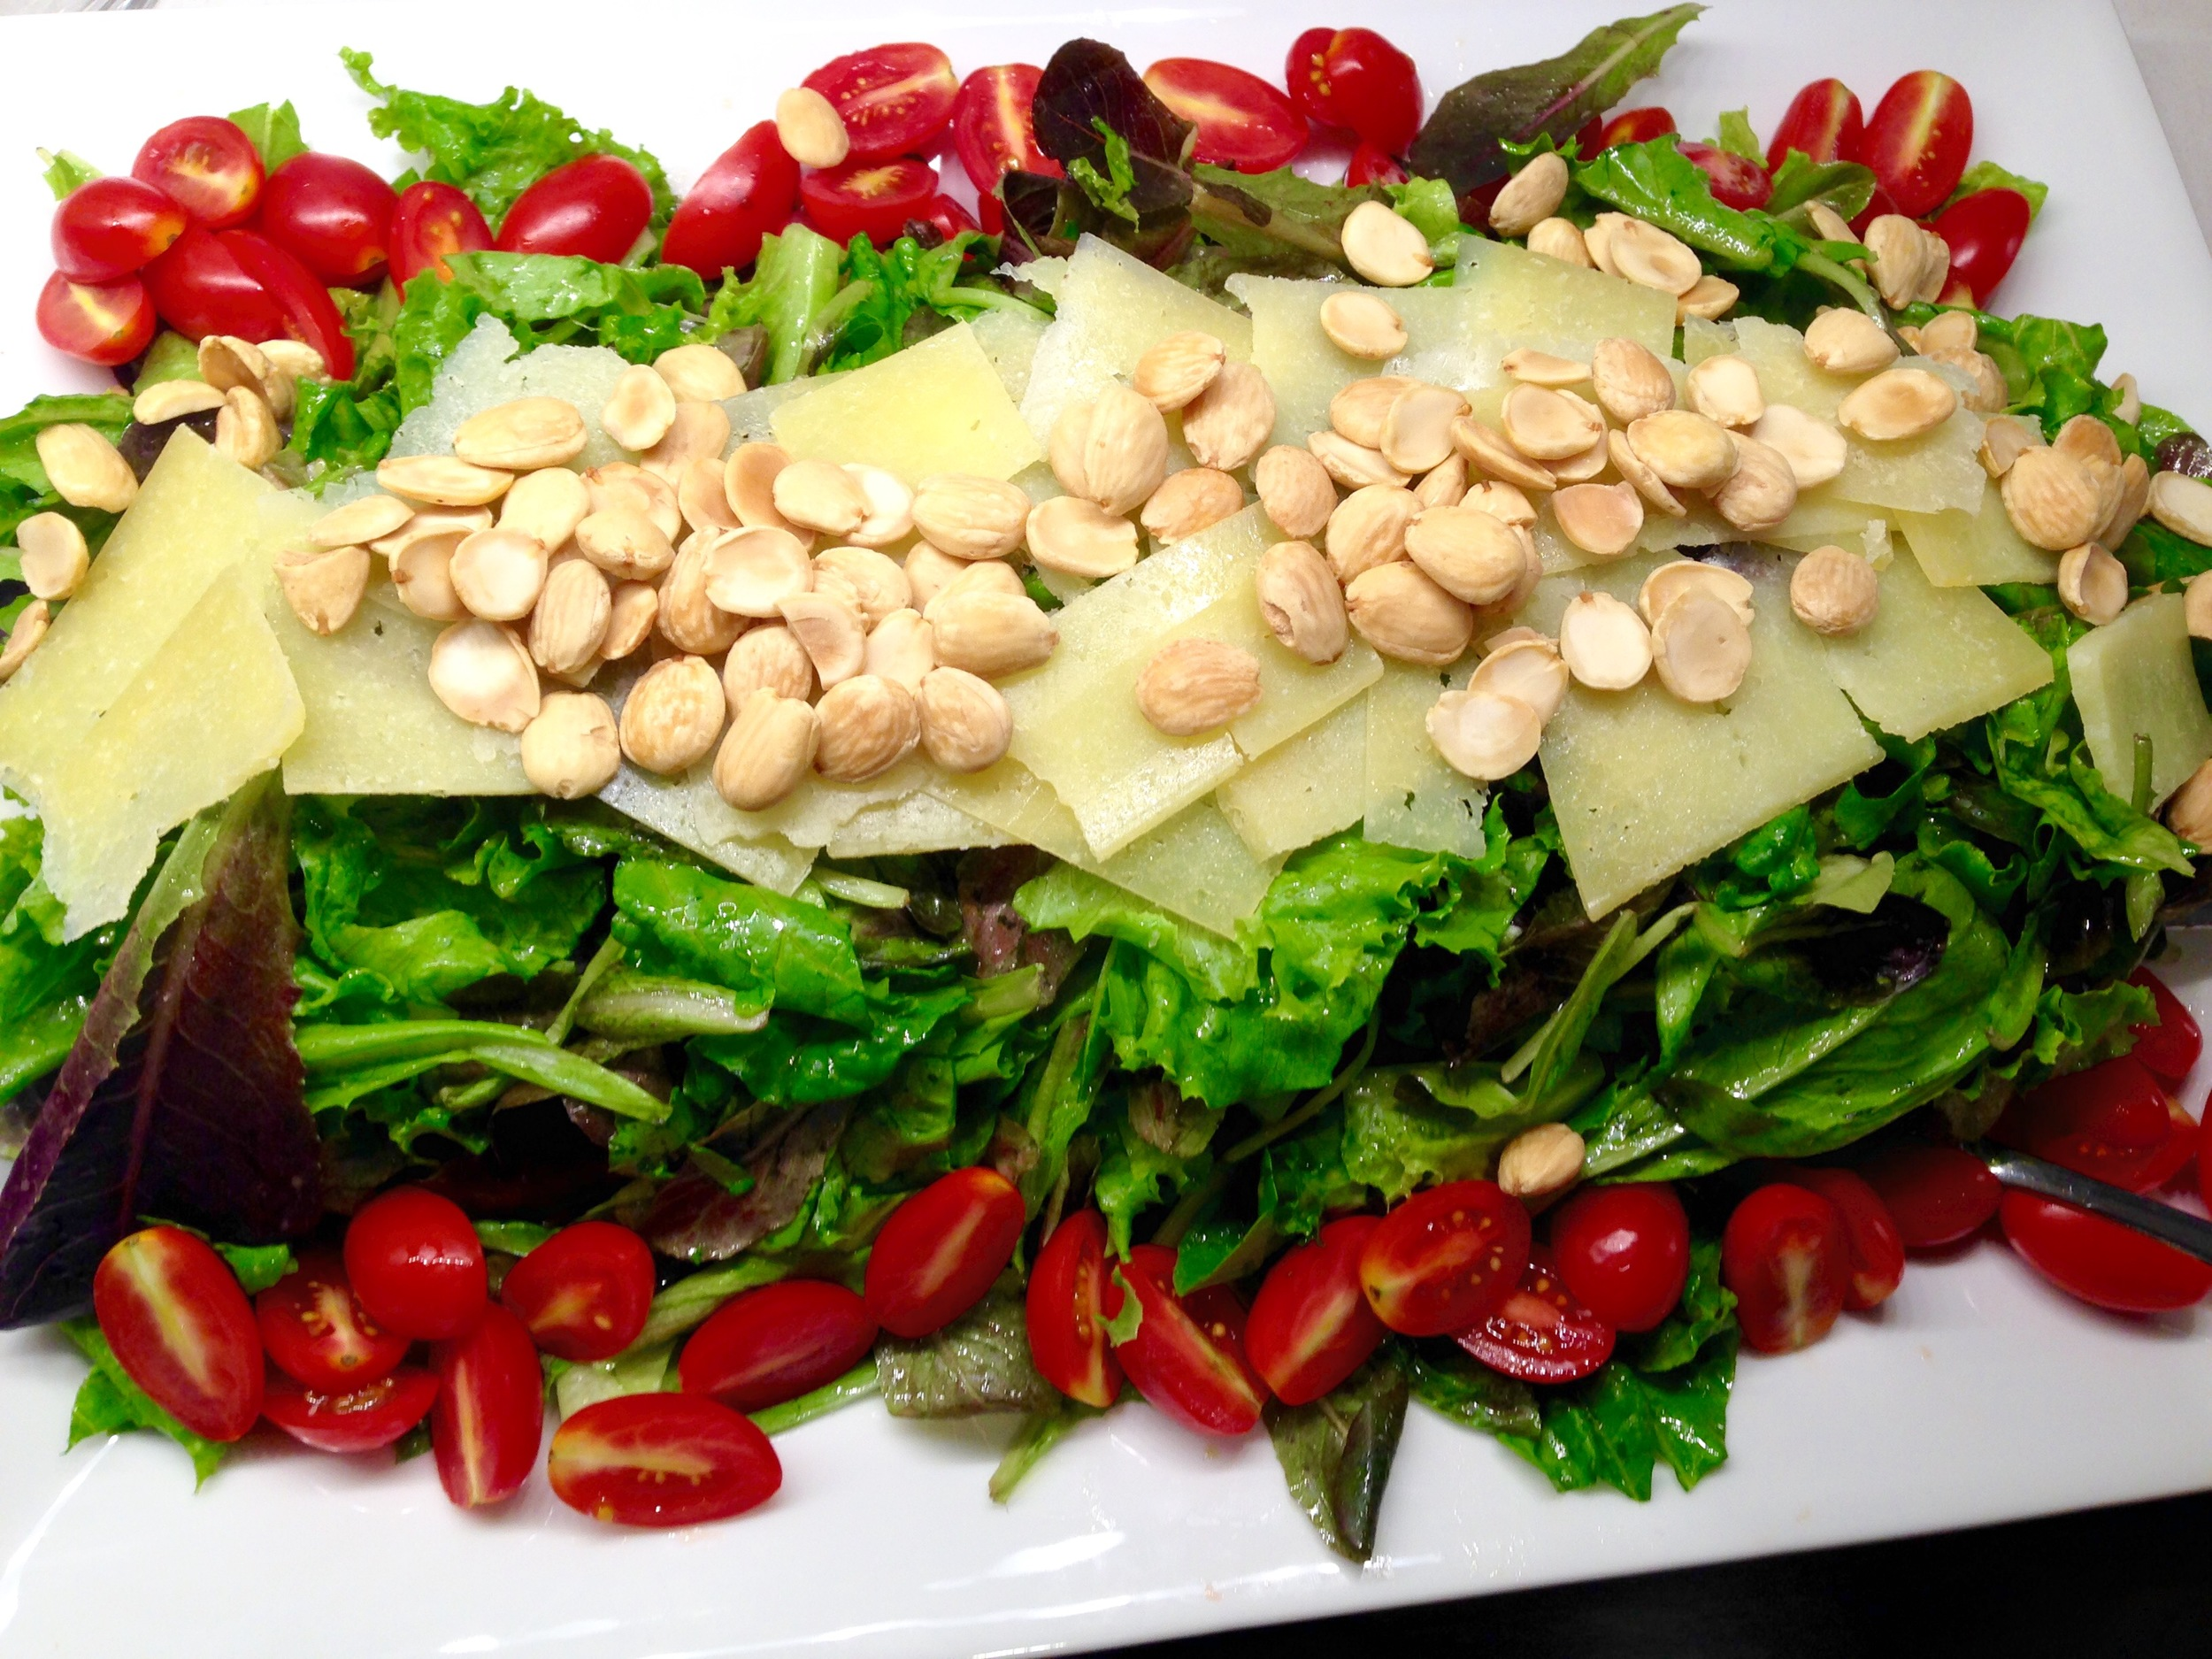 Sweet greens with manchego, tomato, marcona almonds, sherry vinaigrette